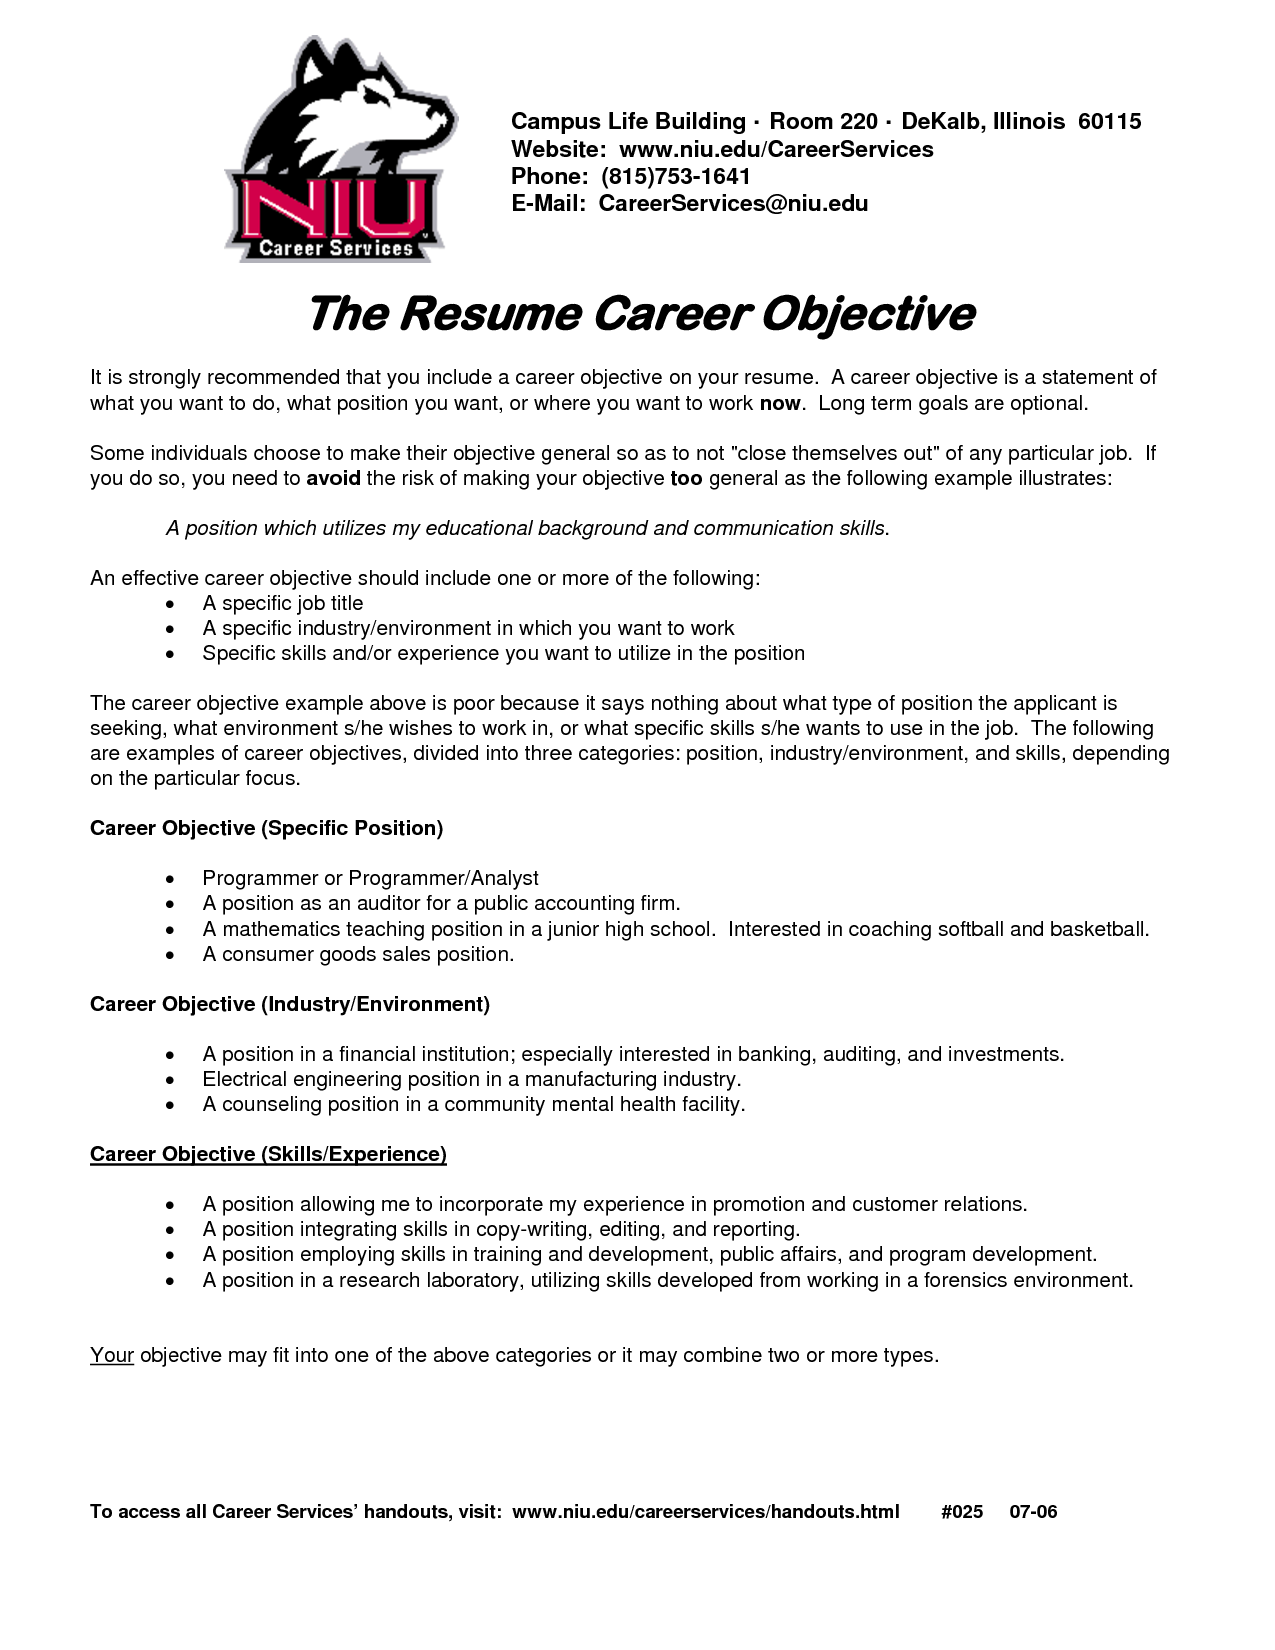 Basic Objective For Resume Httpswwwgooglesearchqobjective Resume  Resume